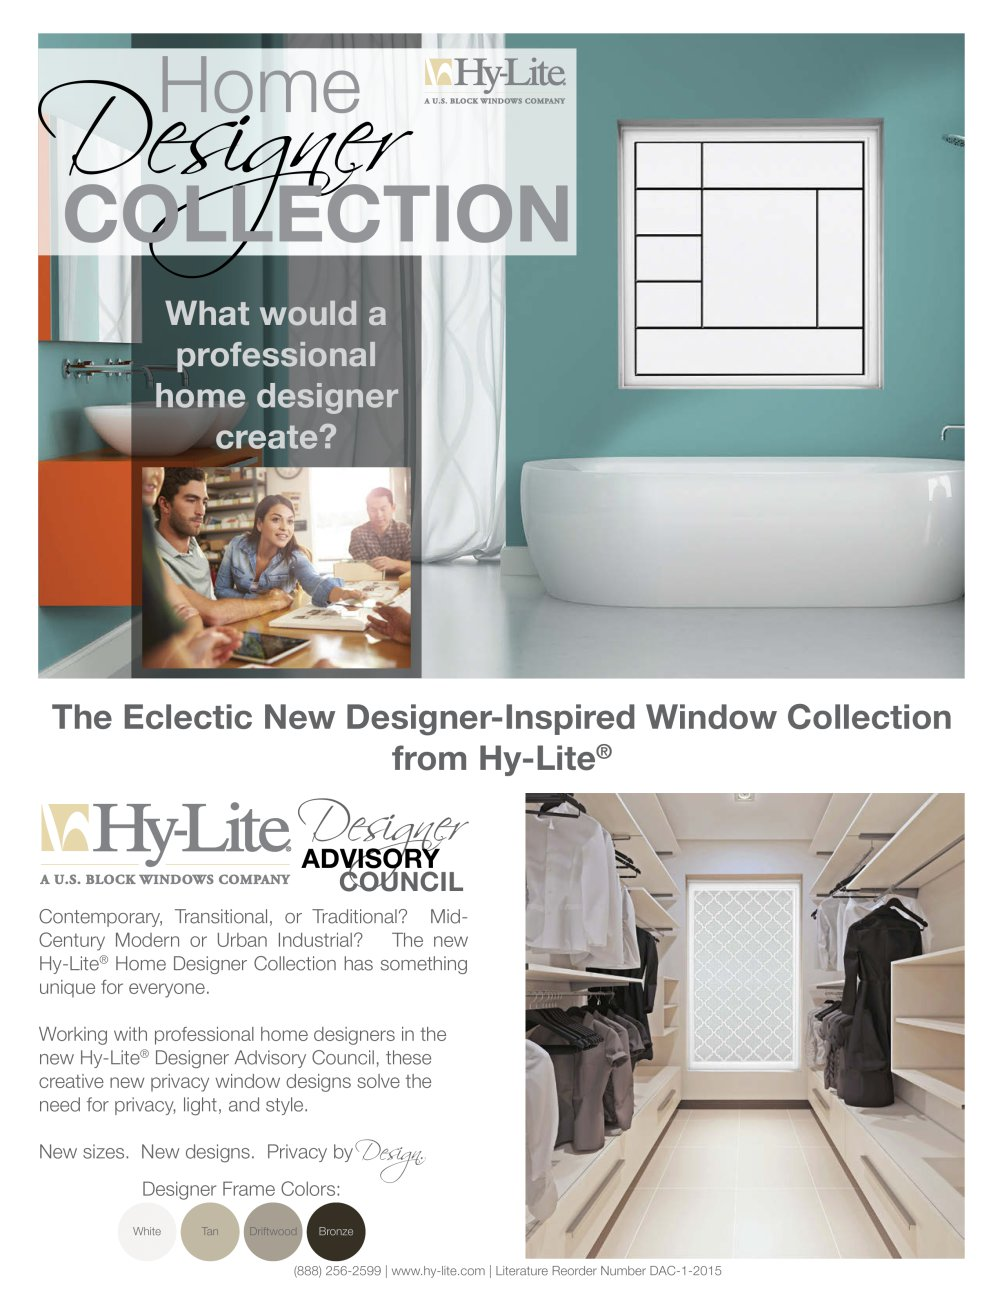 Home Designer Collection home designer collection - hy-lite - pdf catalogues